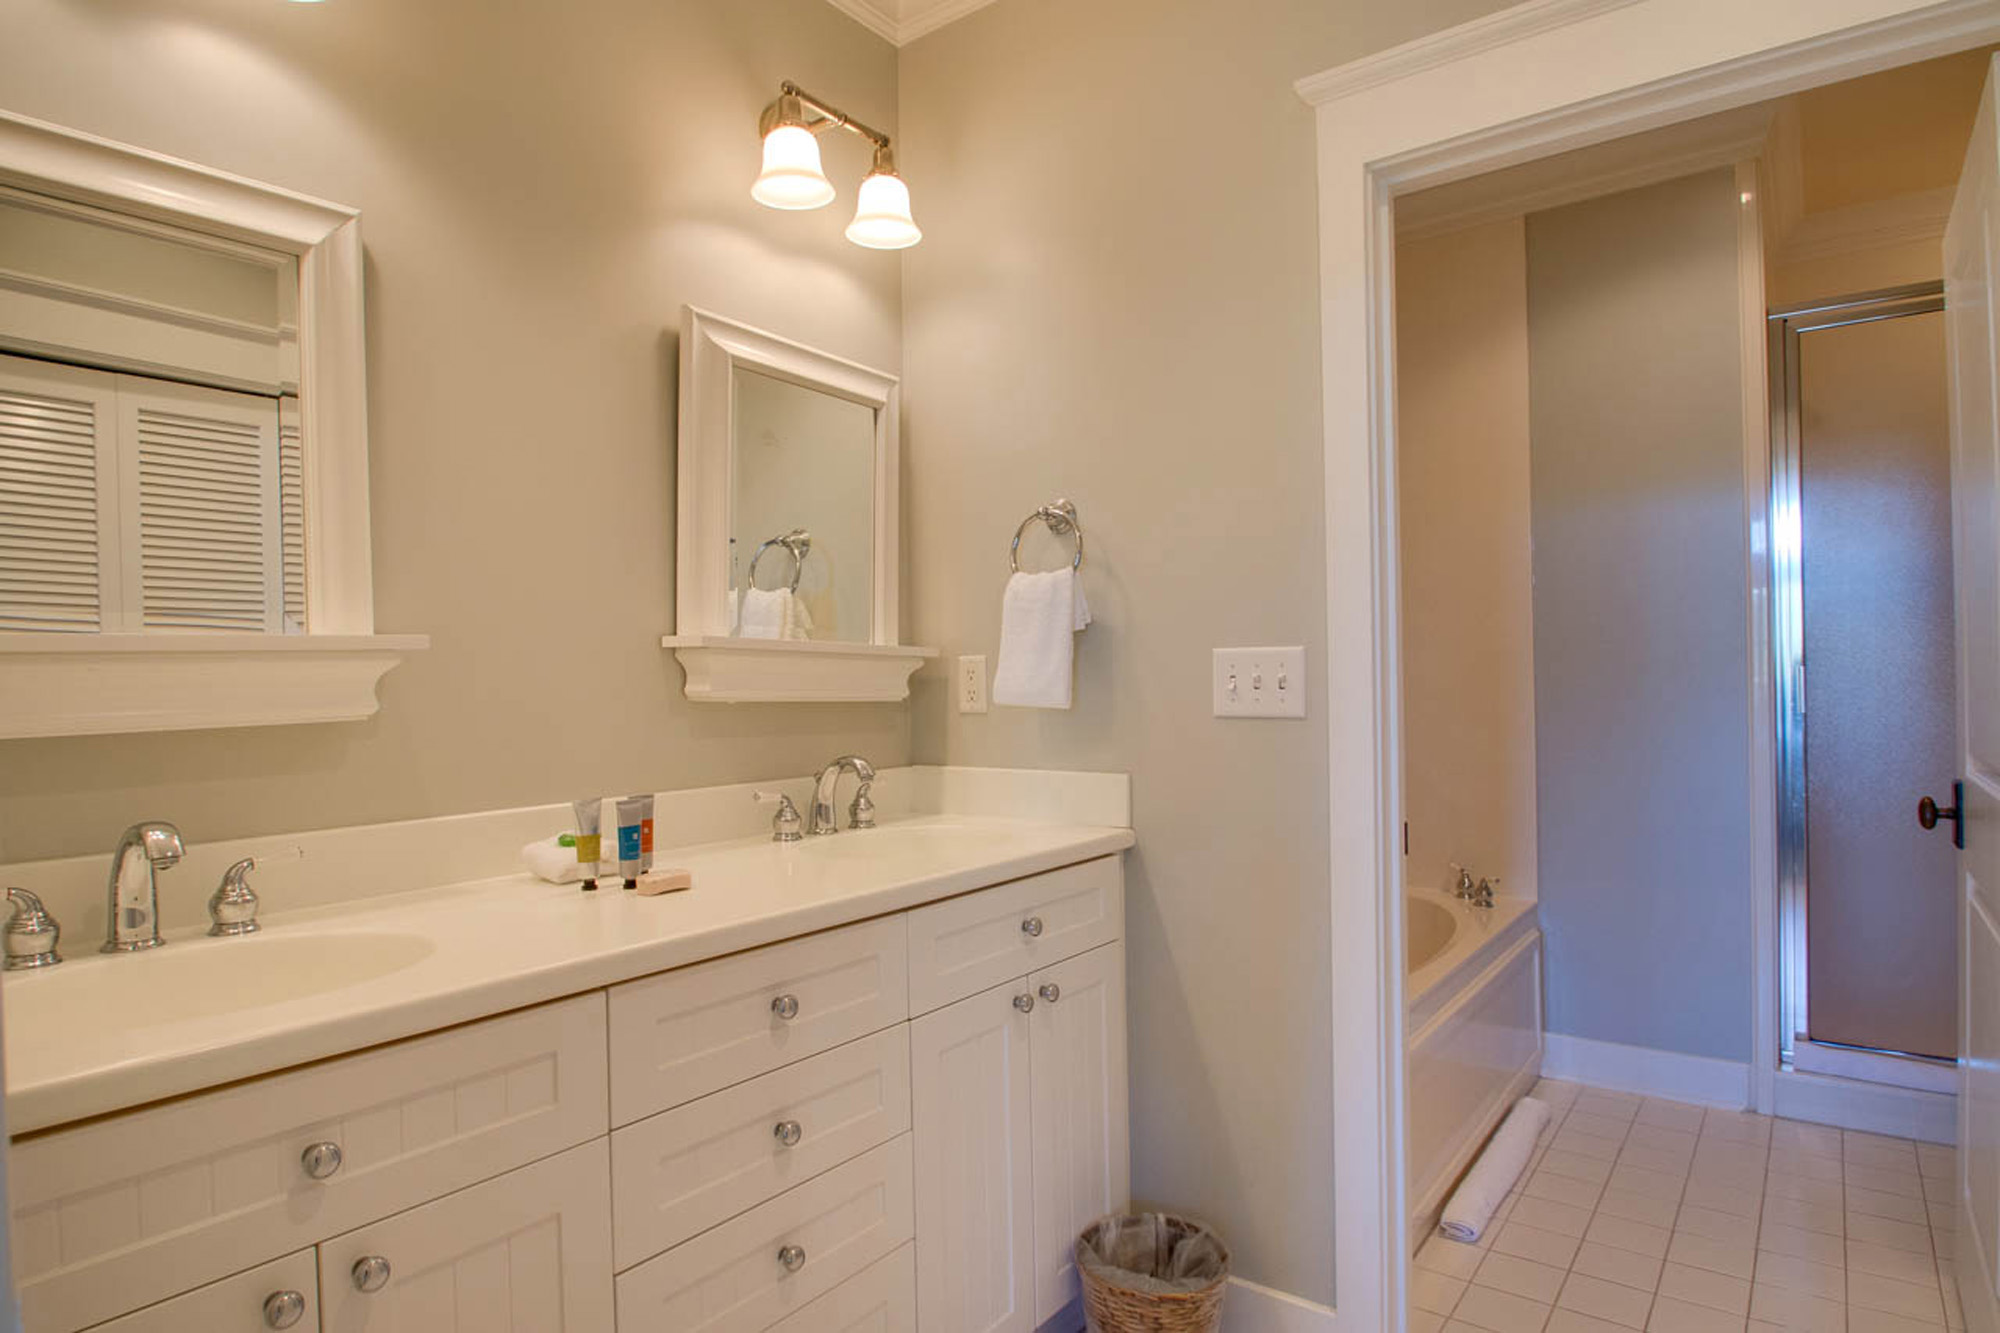 Master ensuite bathroom with double vanities, separate tub and shower.